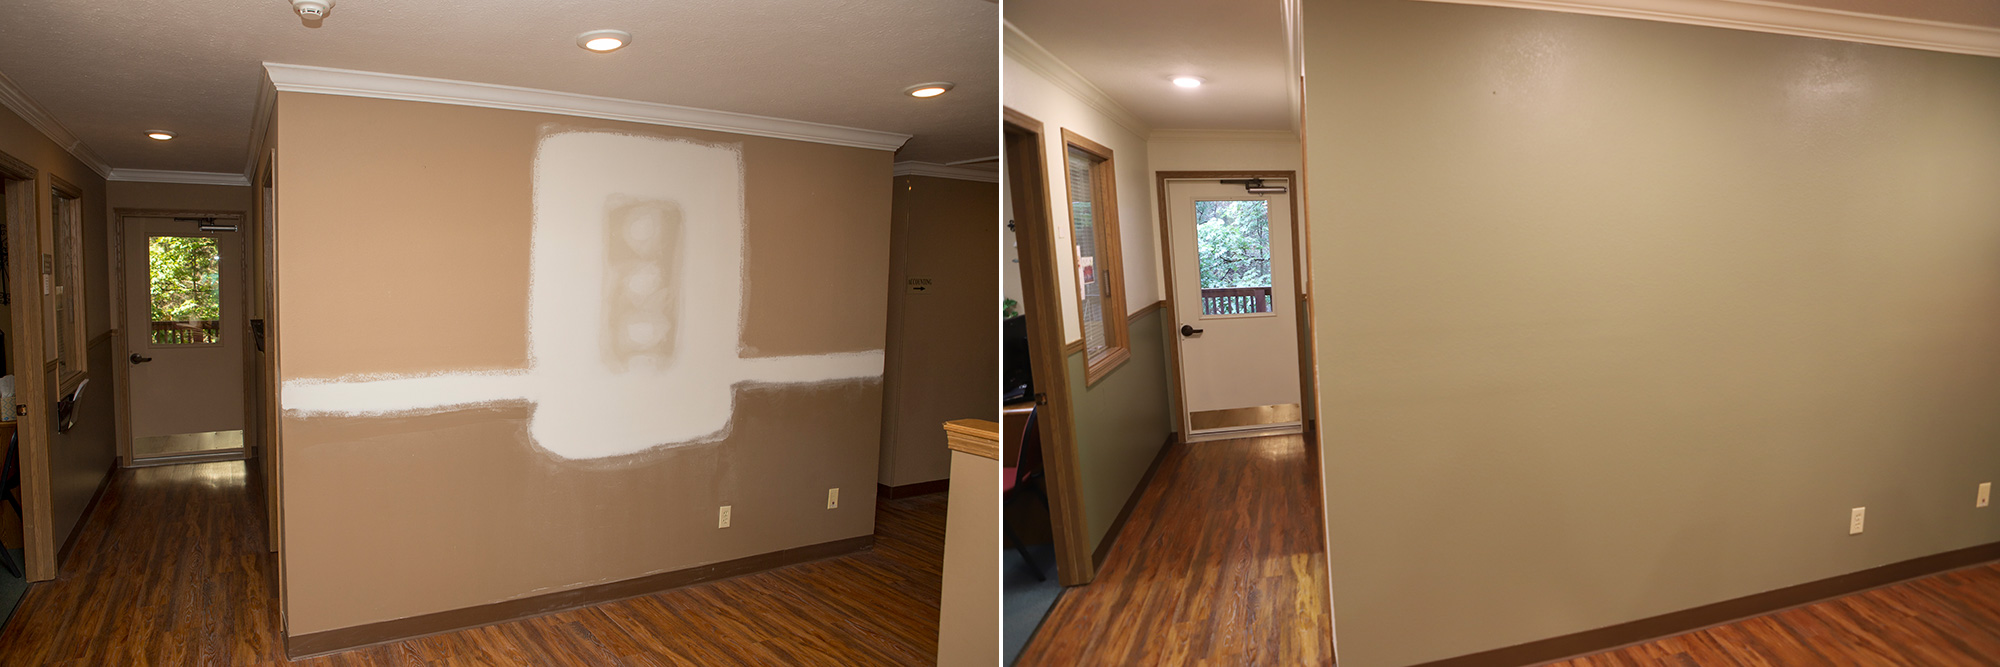 Wall Repair - Before & After